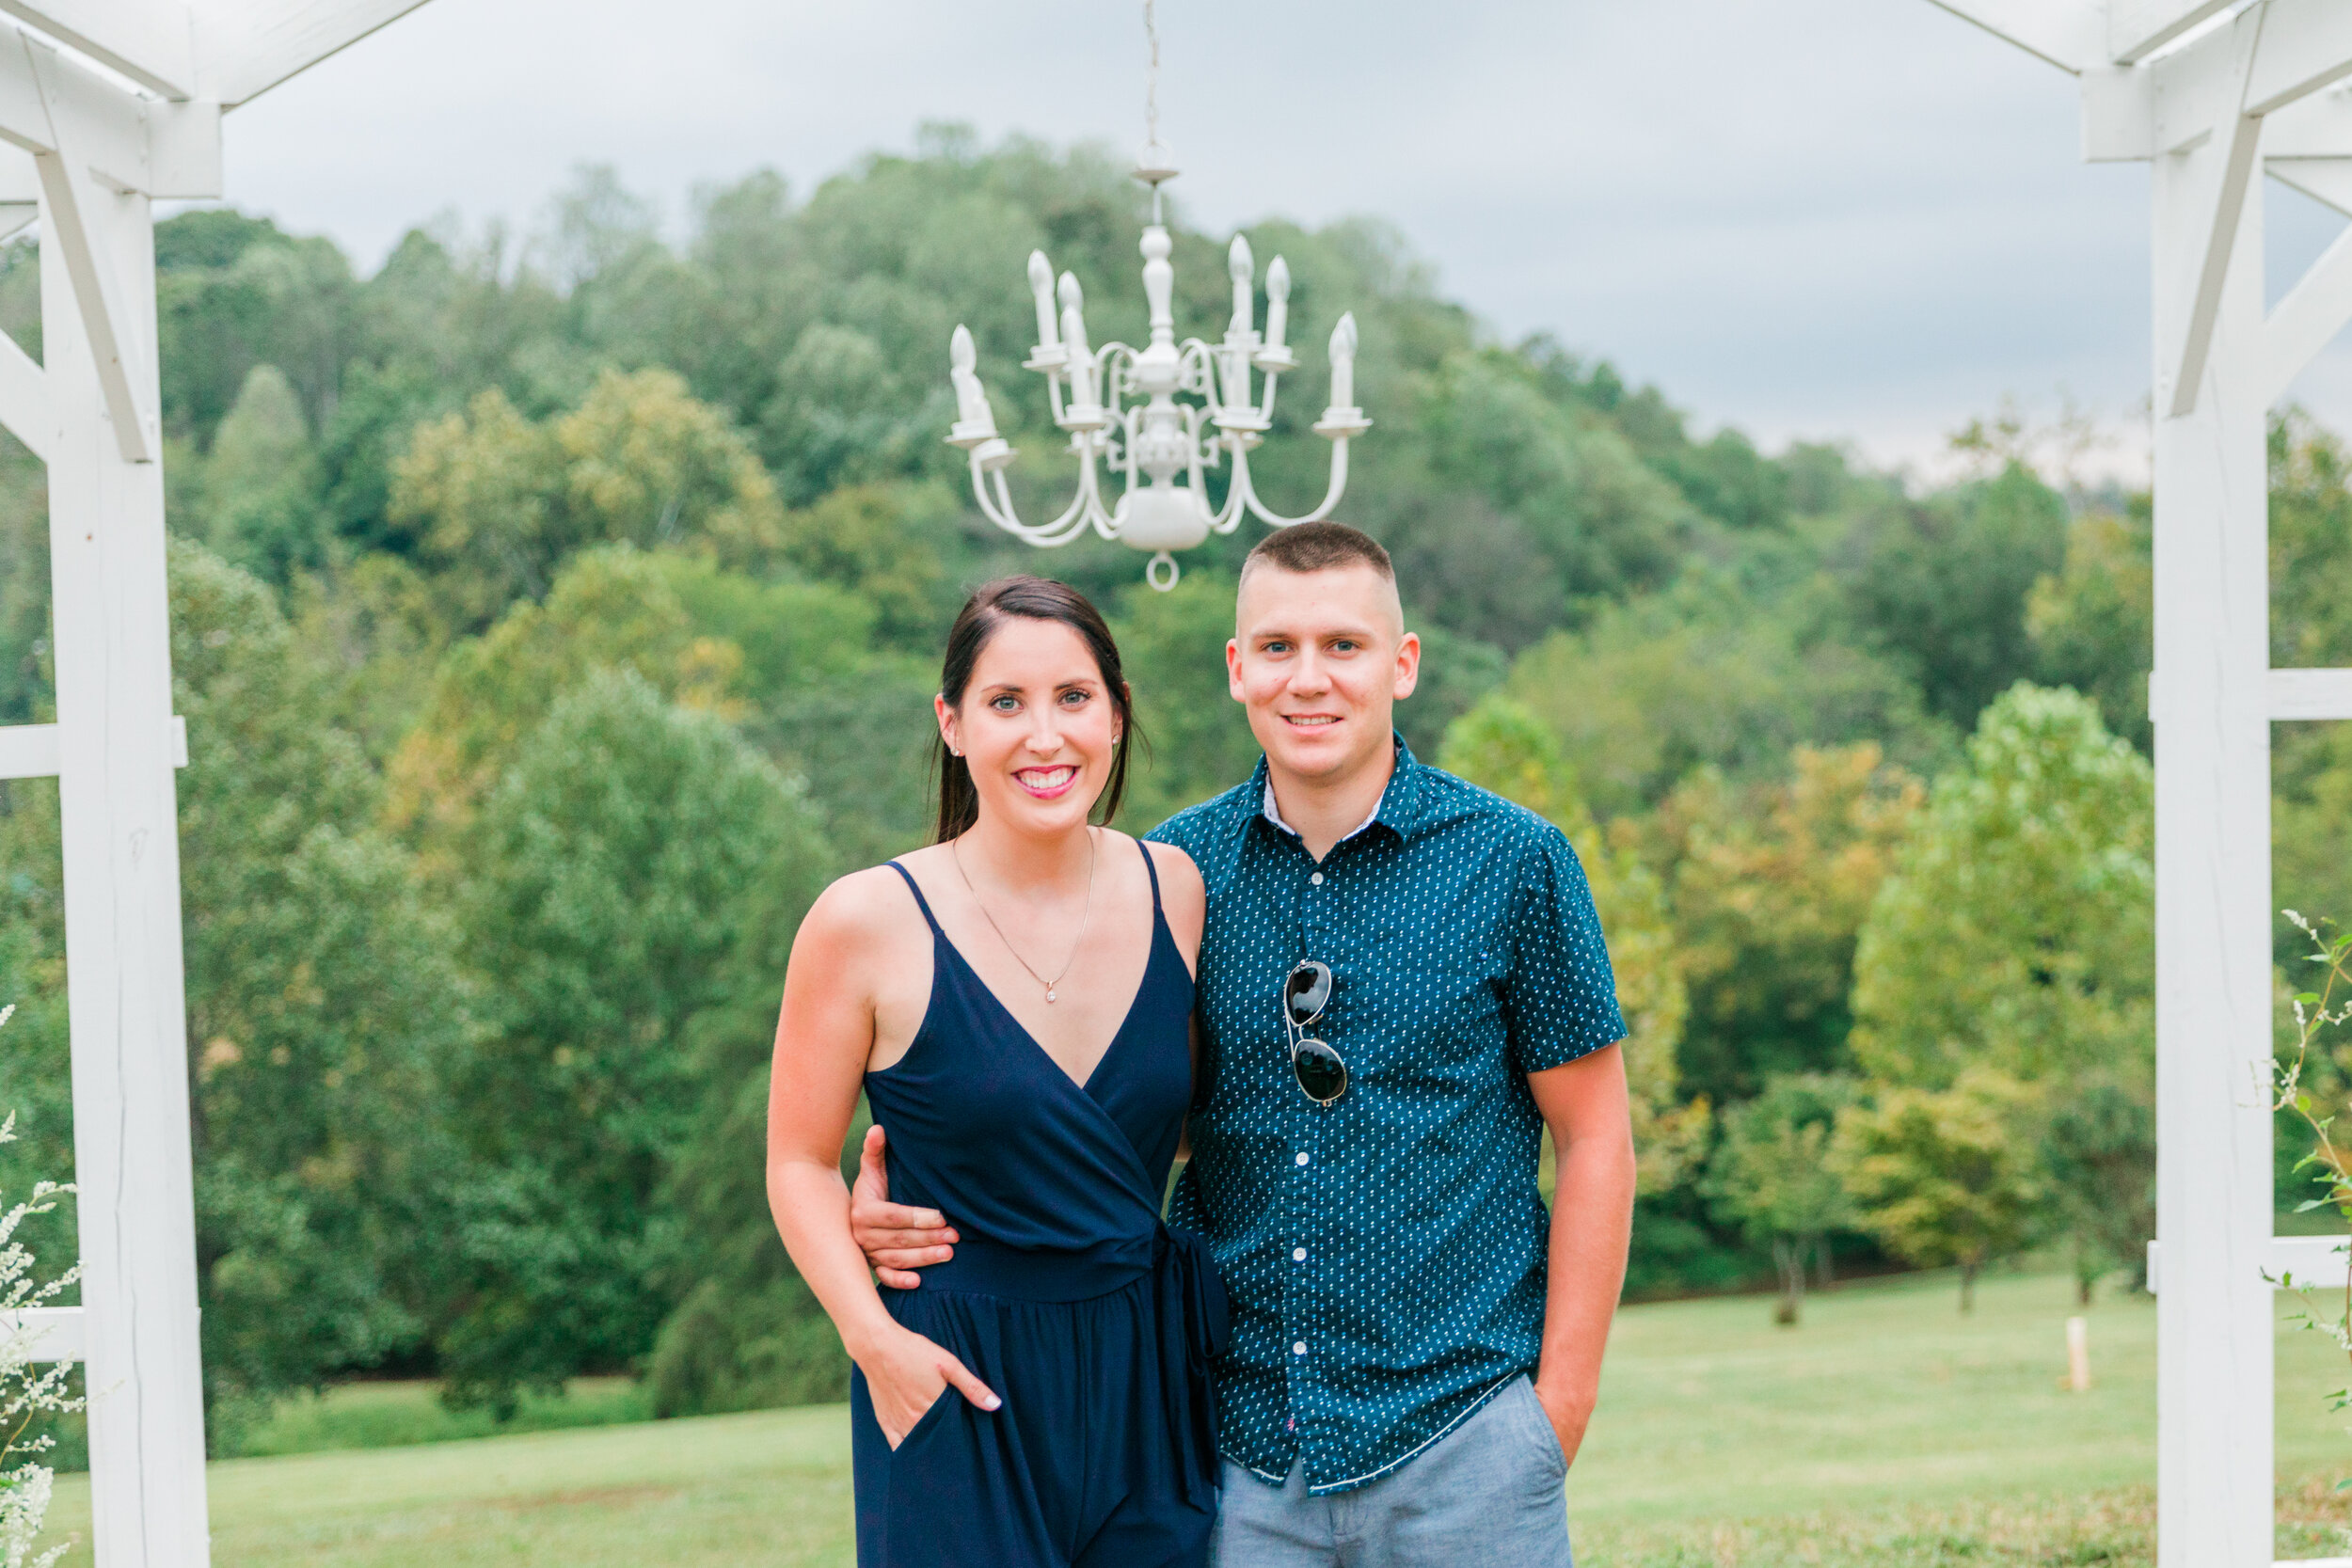 Isabelle and Jordan Russell - bought the property from Susan in 2018 and named it Belle Garden Estate and are continuing to run it as a wedding and event venue and inn.